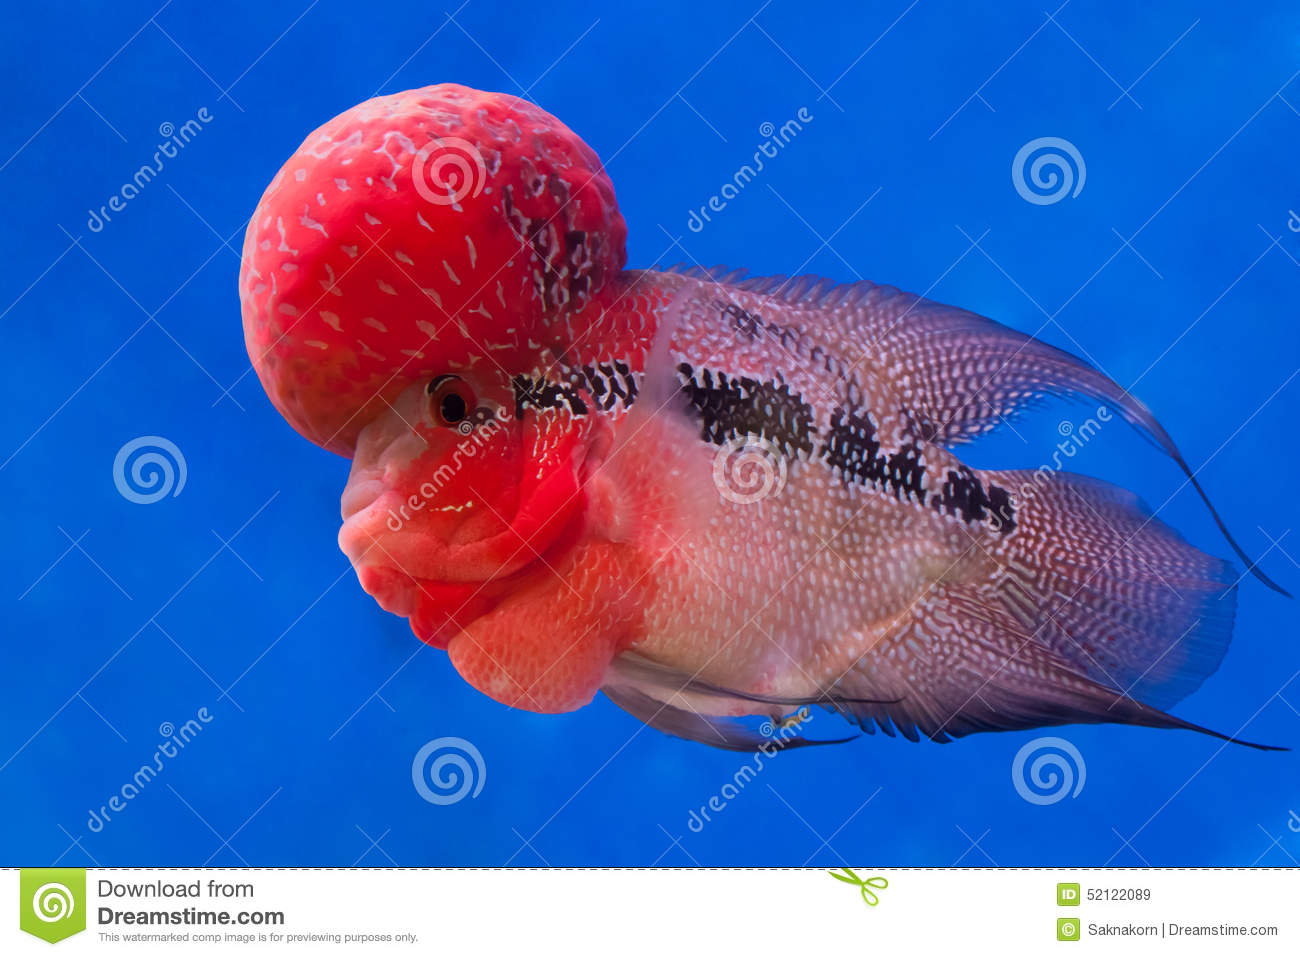 Flowerhorn cichlid fish stock image image of swimming for Flower horn fish price